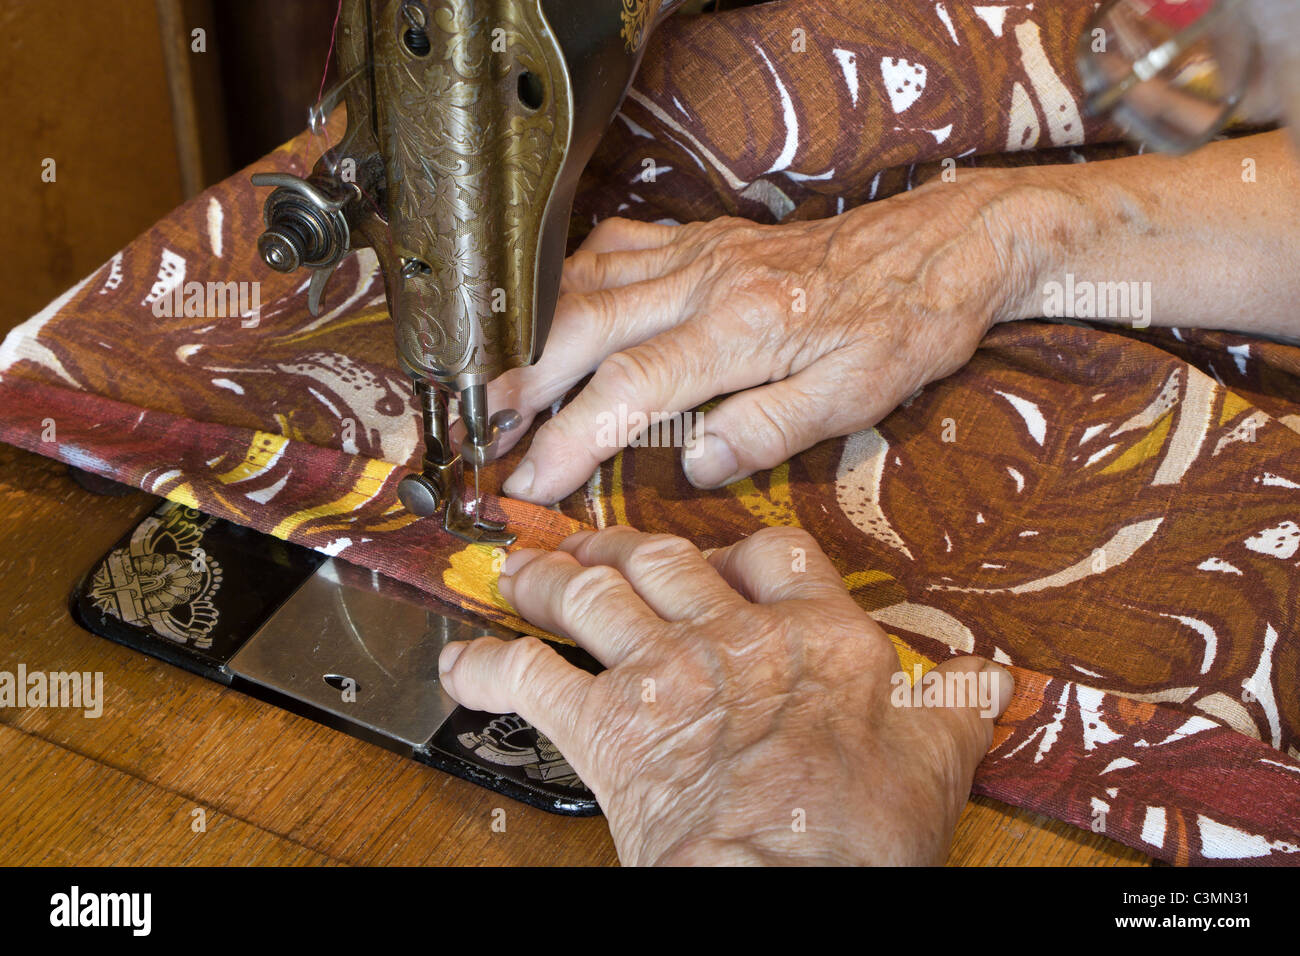 hands of old woman by the needlework - Stock Image